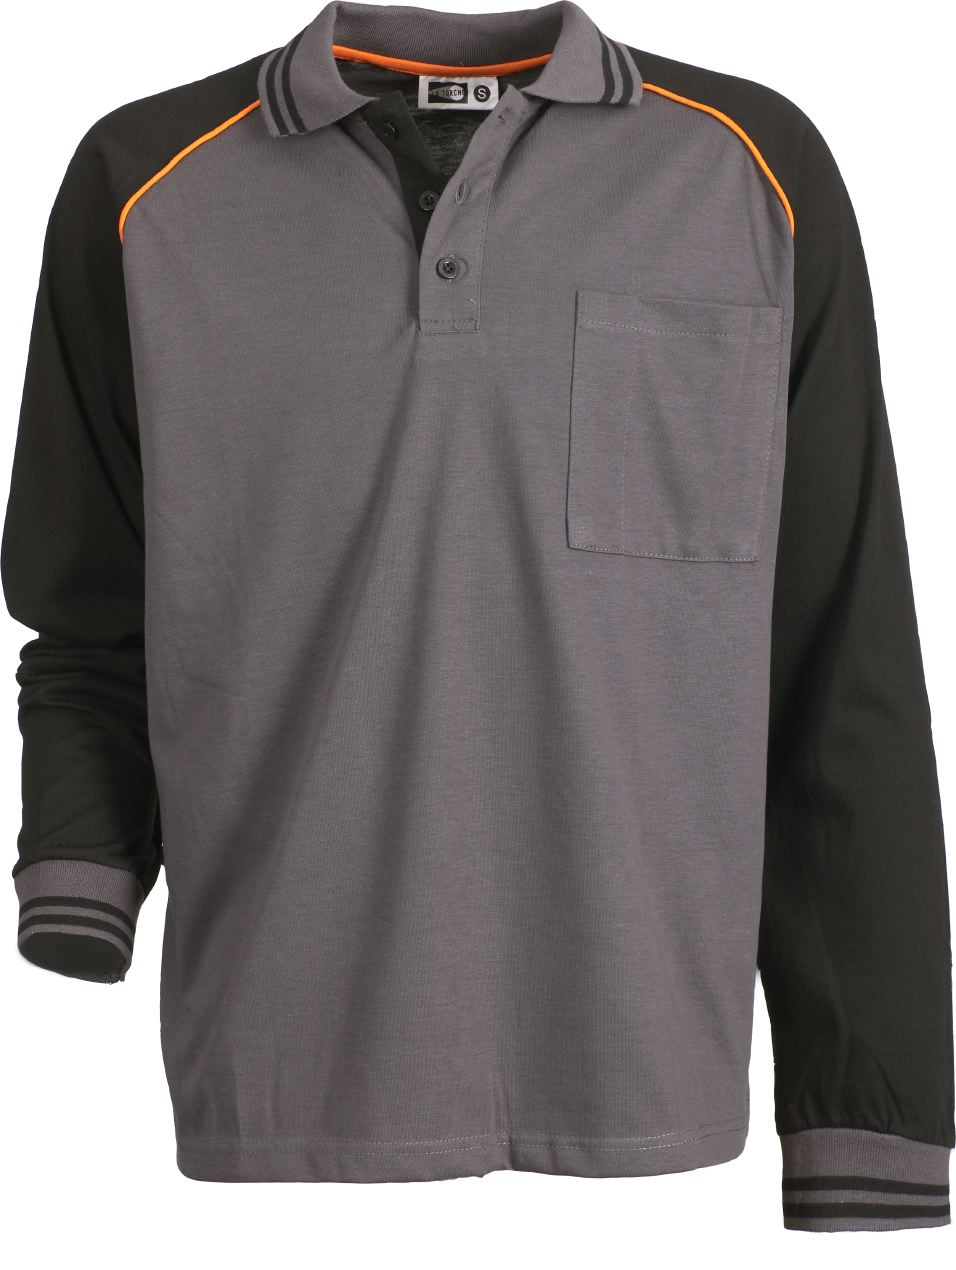 LONG SLEEVES WORK POLO SHIRT CARBONE RANGE